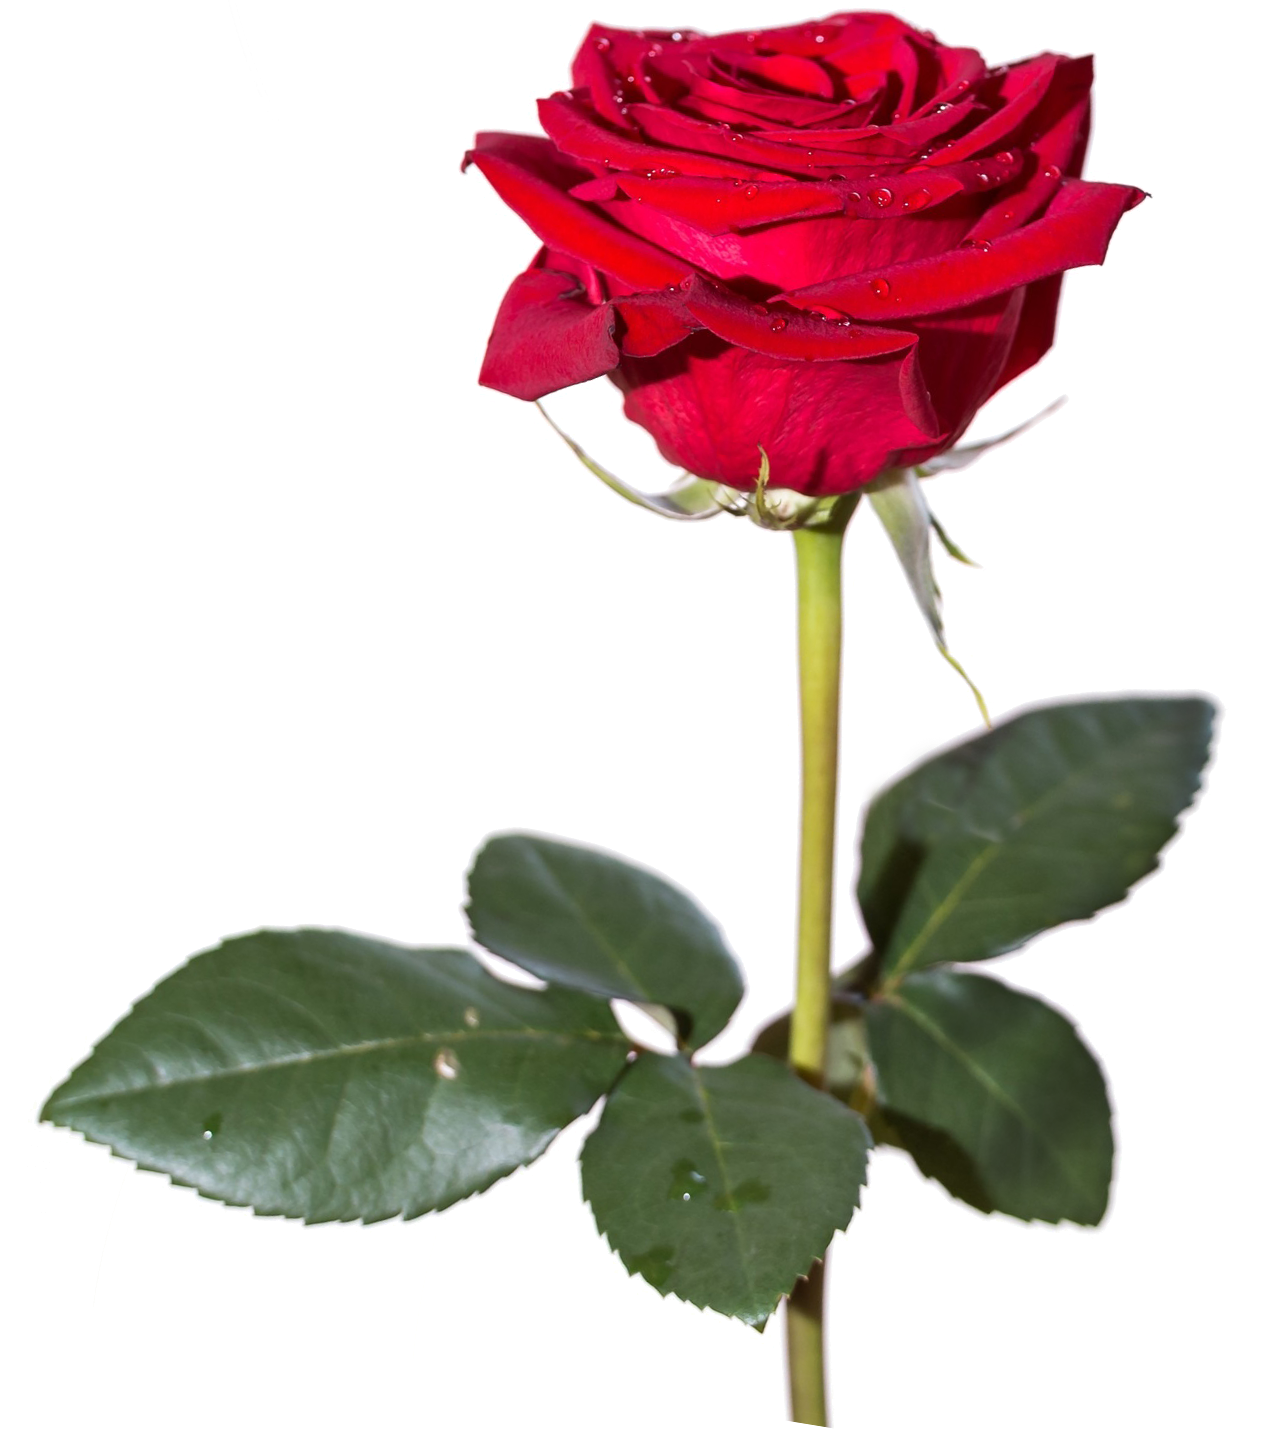 Rose Hd Png Transparent Rose Hd Png Images Pluspng